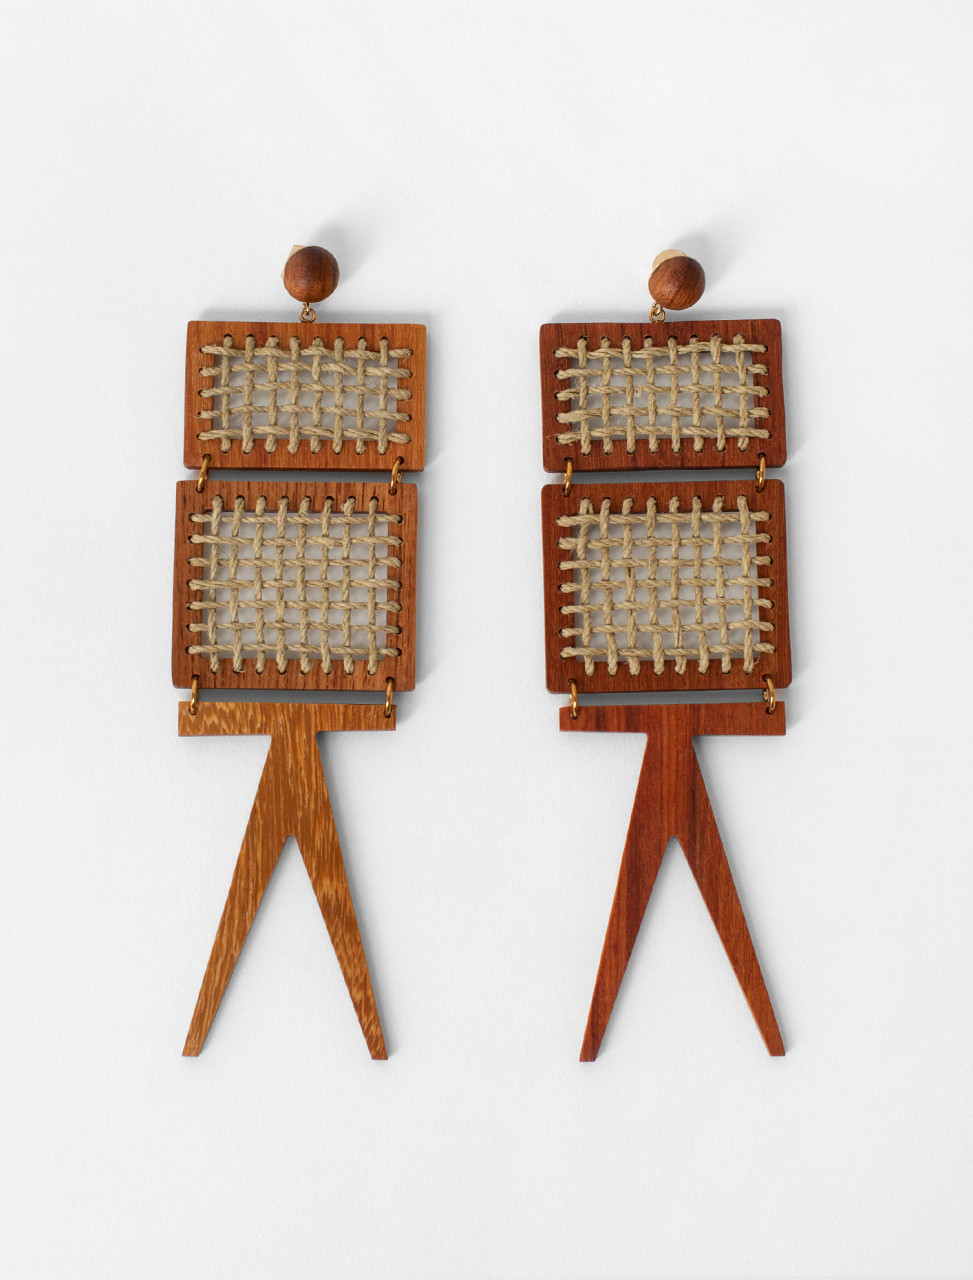 Les Chaises Earrings